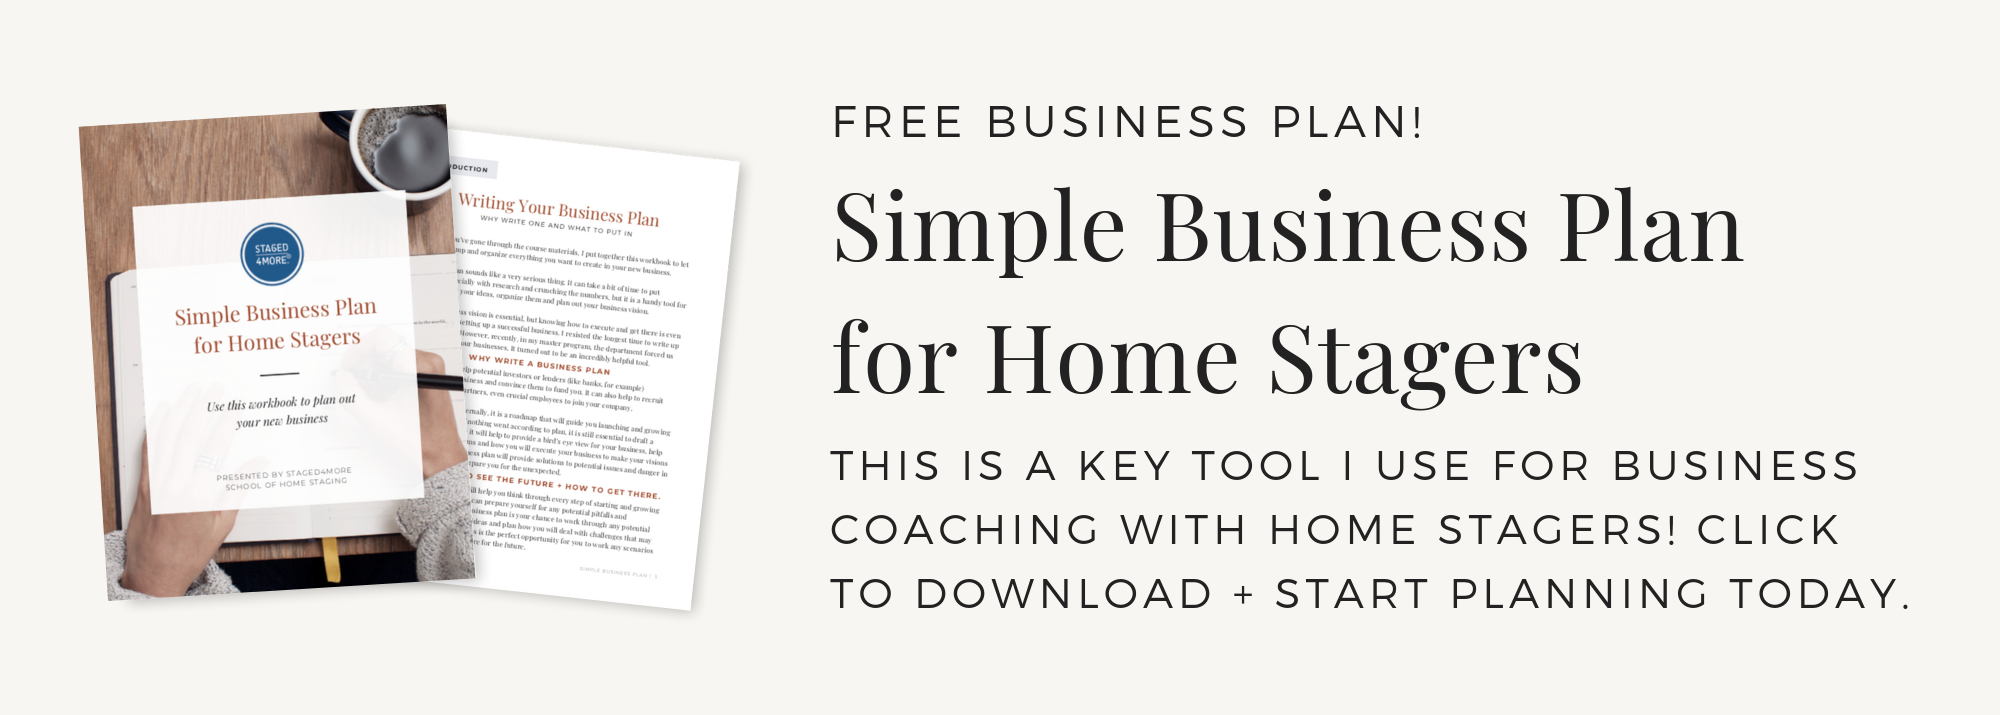 Free+Simple+Business+Plan+for+Home+Stagers.+Created+by+Staged4more+School+of+Home+Staging.png